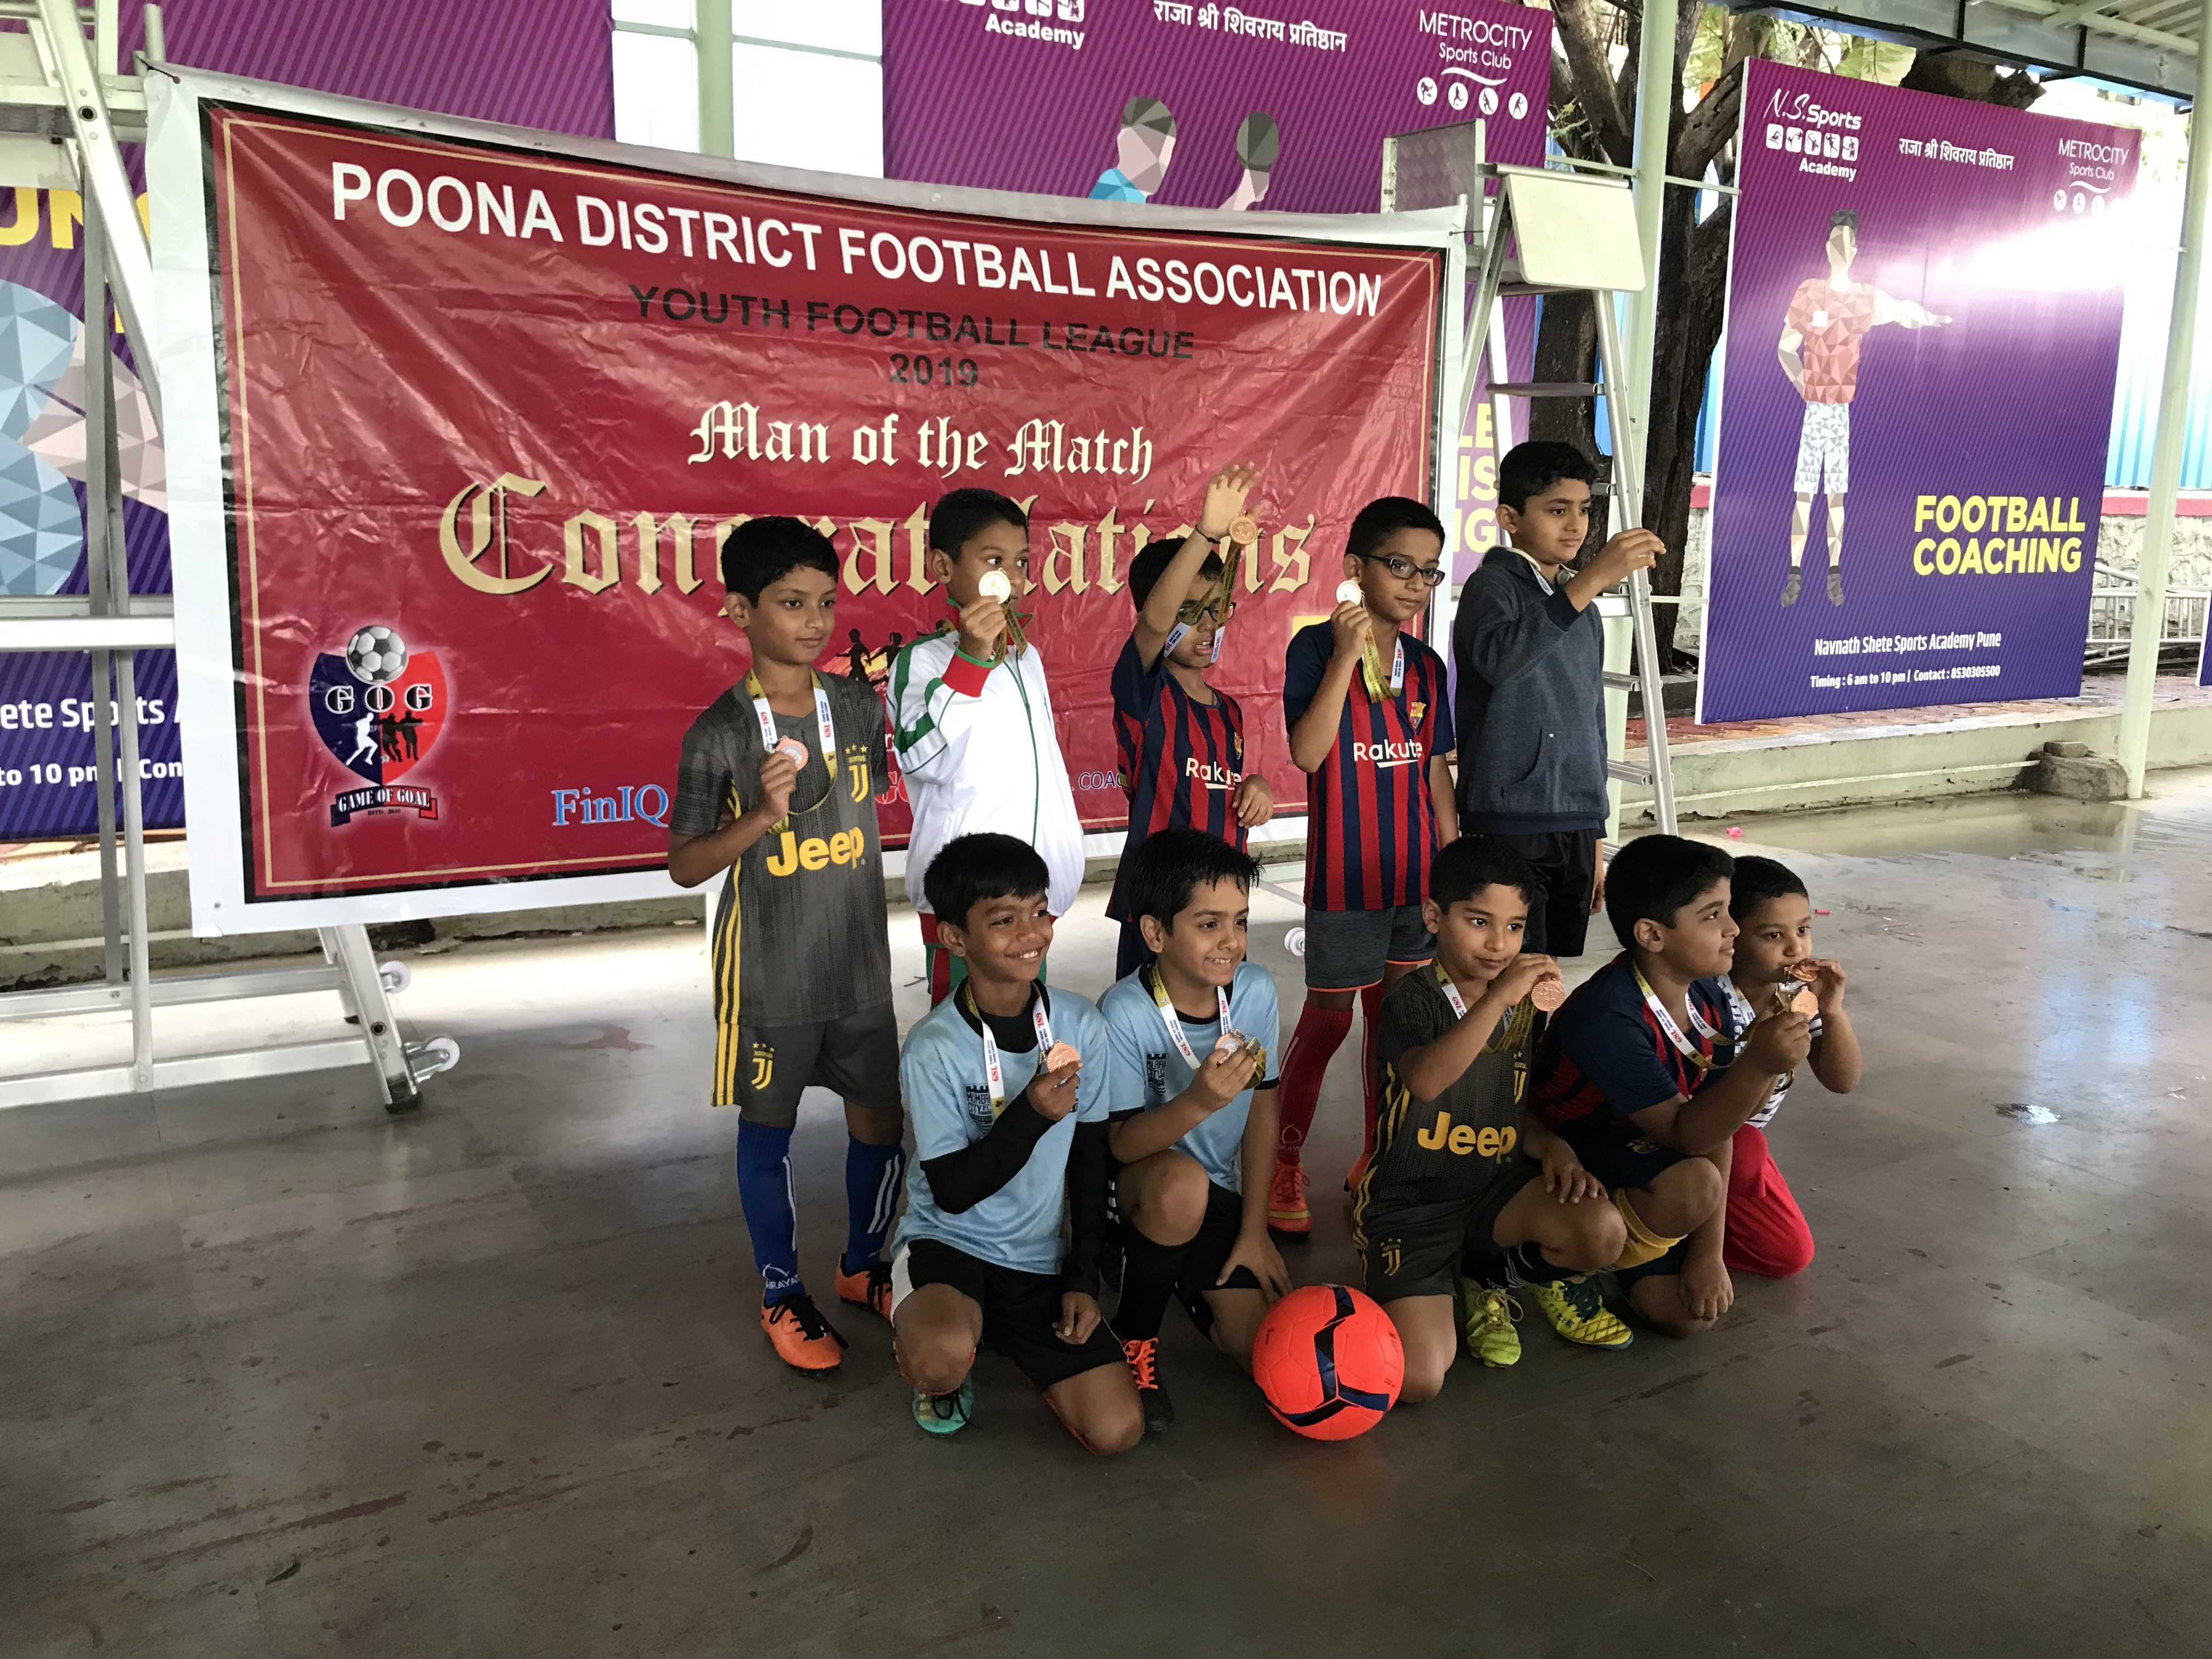 BETA SC Bagged 3rd Place in PDFA